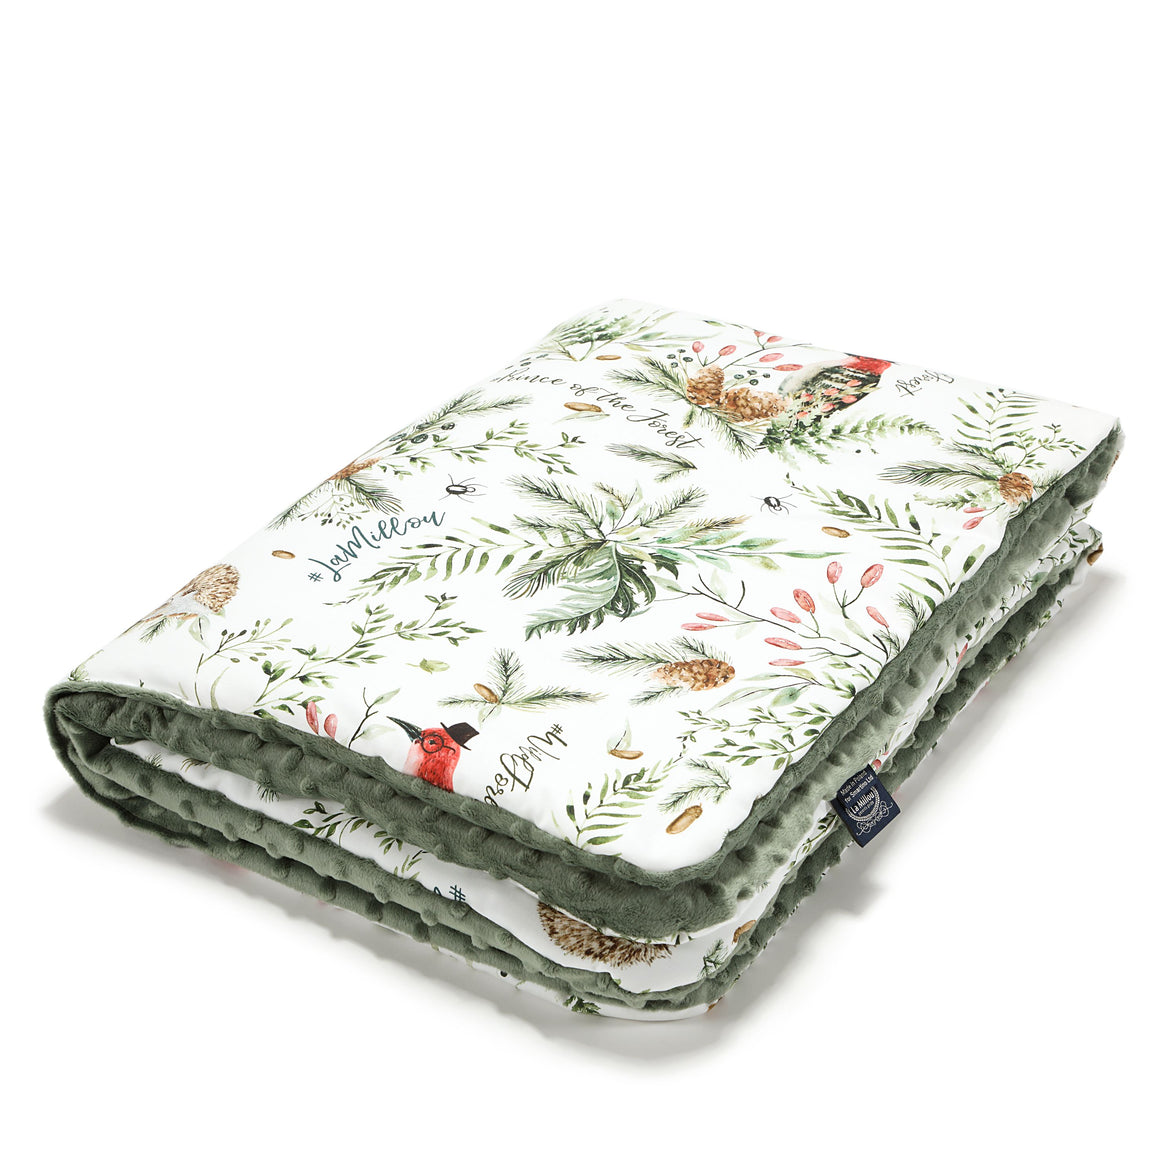 MEDIUM BLANKET - Forest | Khaki